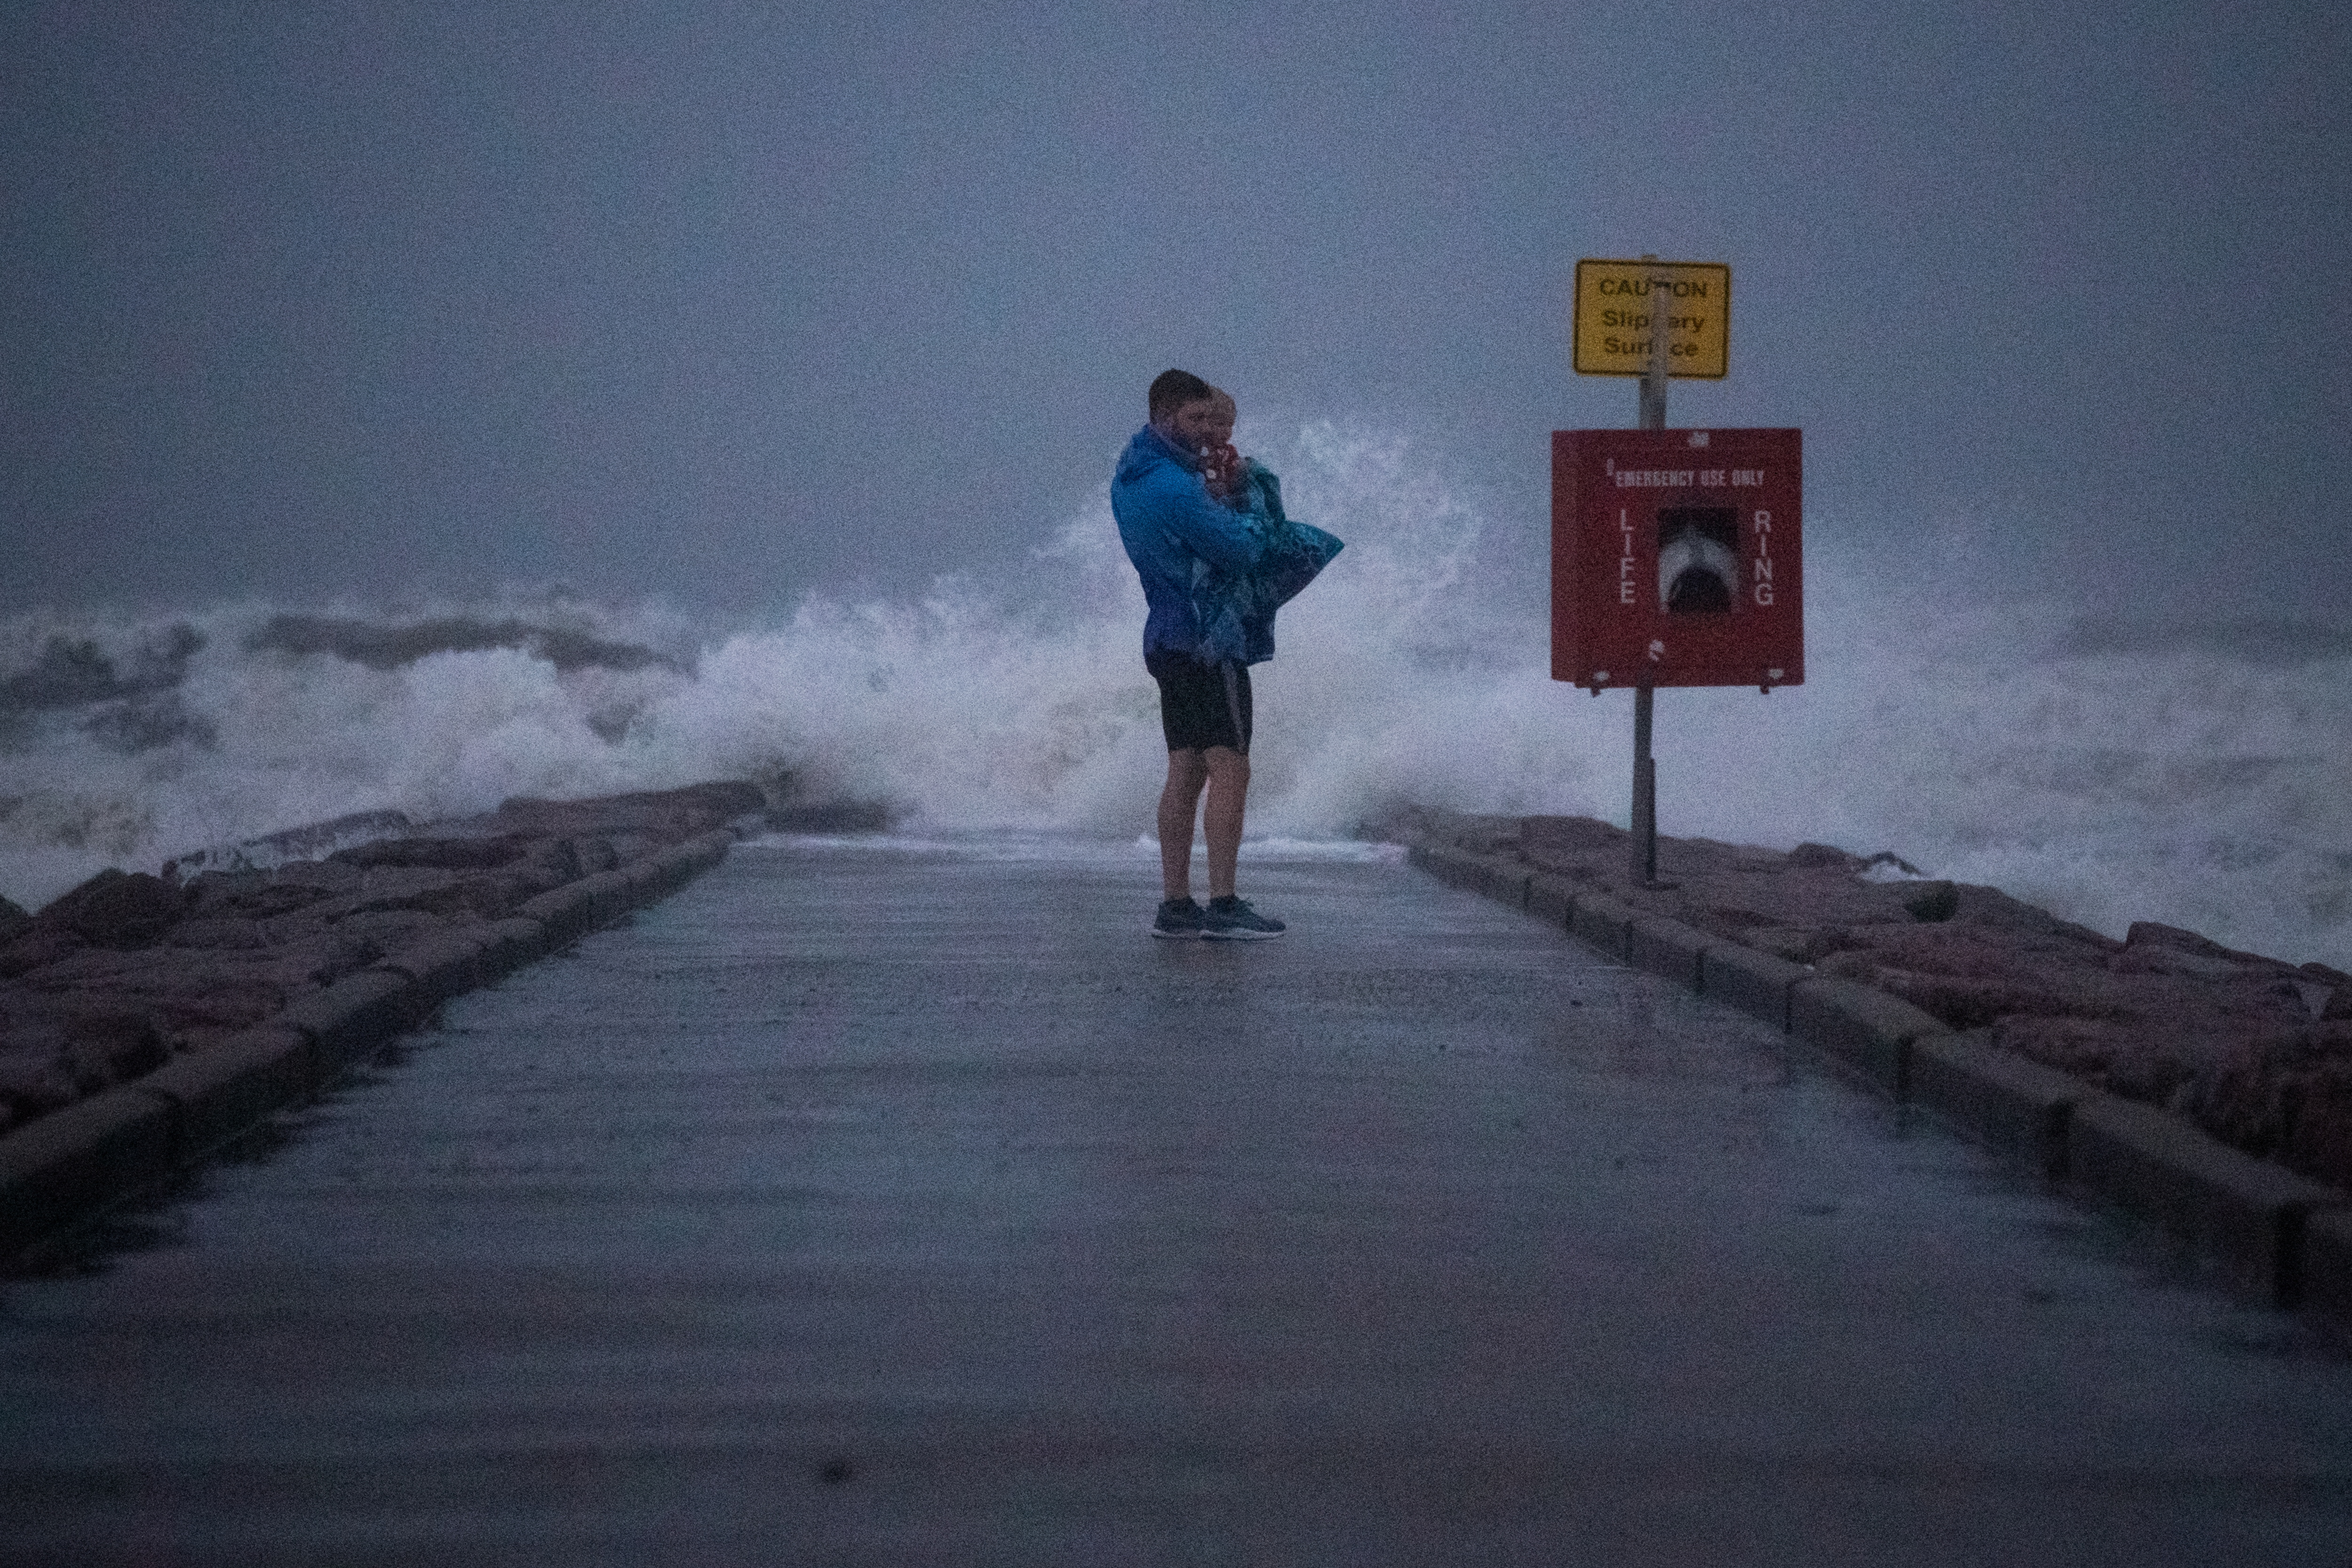 Local resident John Smith holds his 18-month-old son Owen as he stands near breaking waves on a pier ahead of the arrival of Tropical Storm Nicholas in Galveston, Texas, U.S., September 13, 2021. REUTERS/Adrees Latif